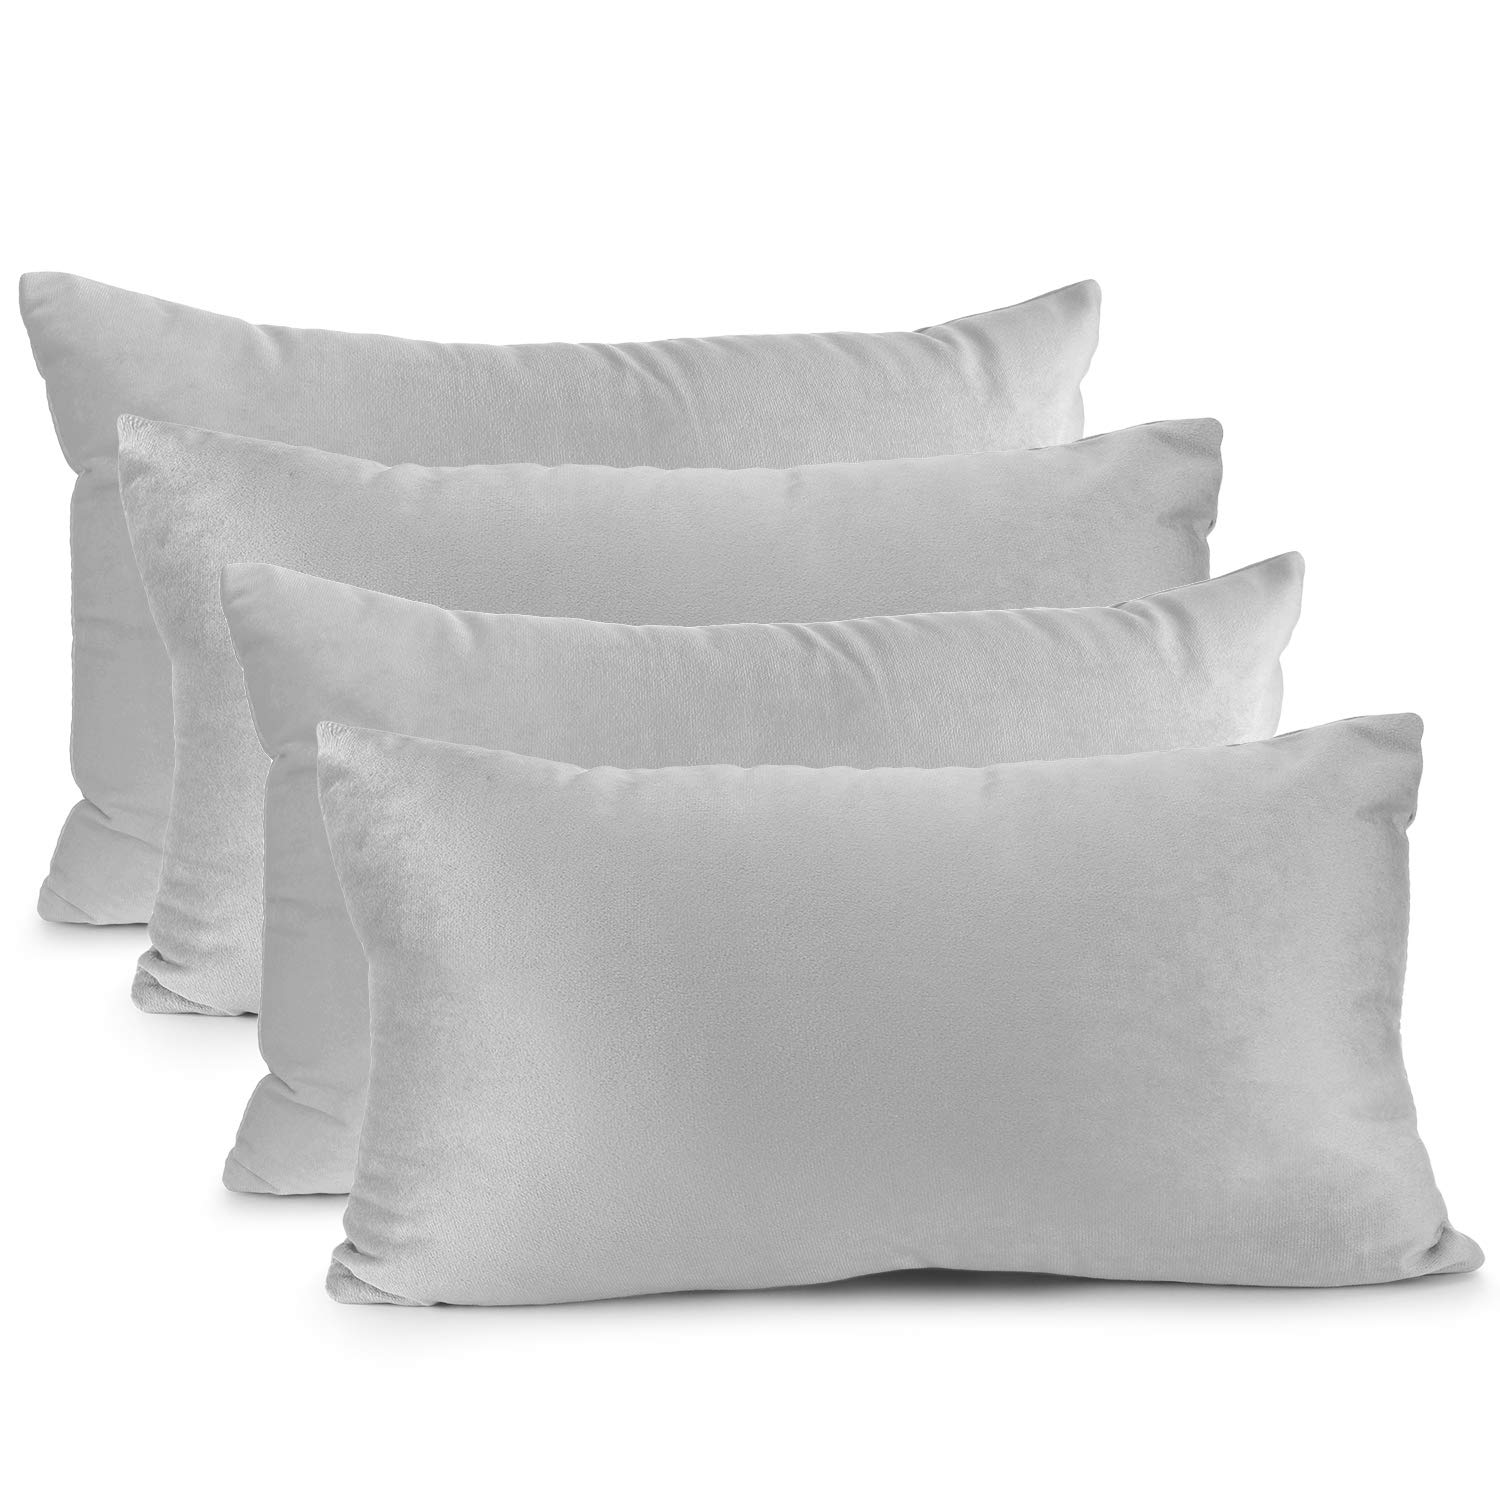 """Nestl Bedding Throw Pillow Cover 12"""" x 20"""" Soft Square Decorative Throw Pillow Covers Cozy Velvet Cushion Case for Sofa Couch Bedroom, Set of 4, Light Gray"""